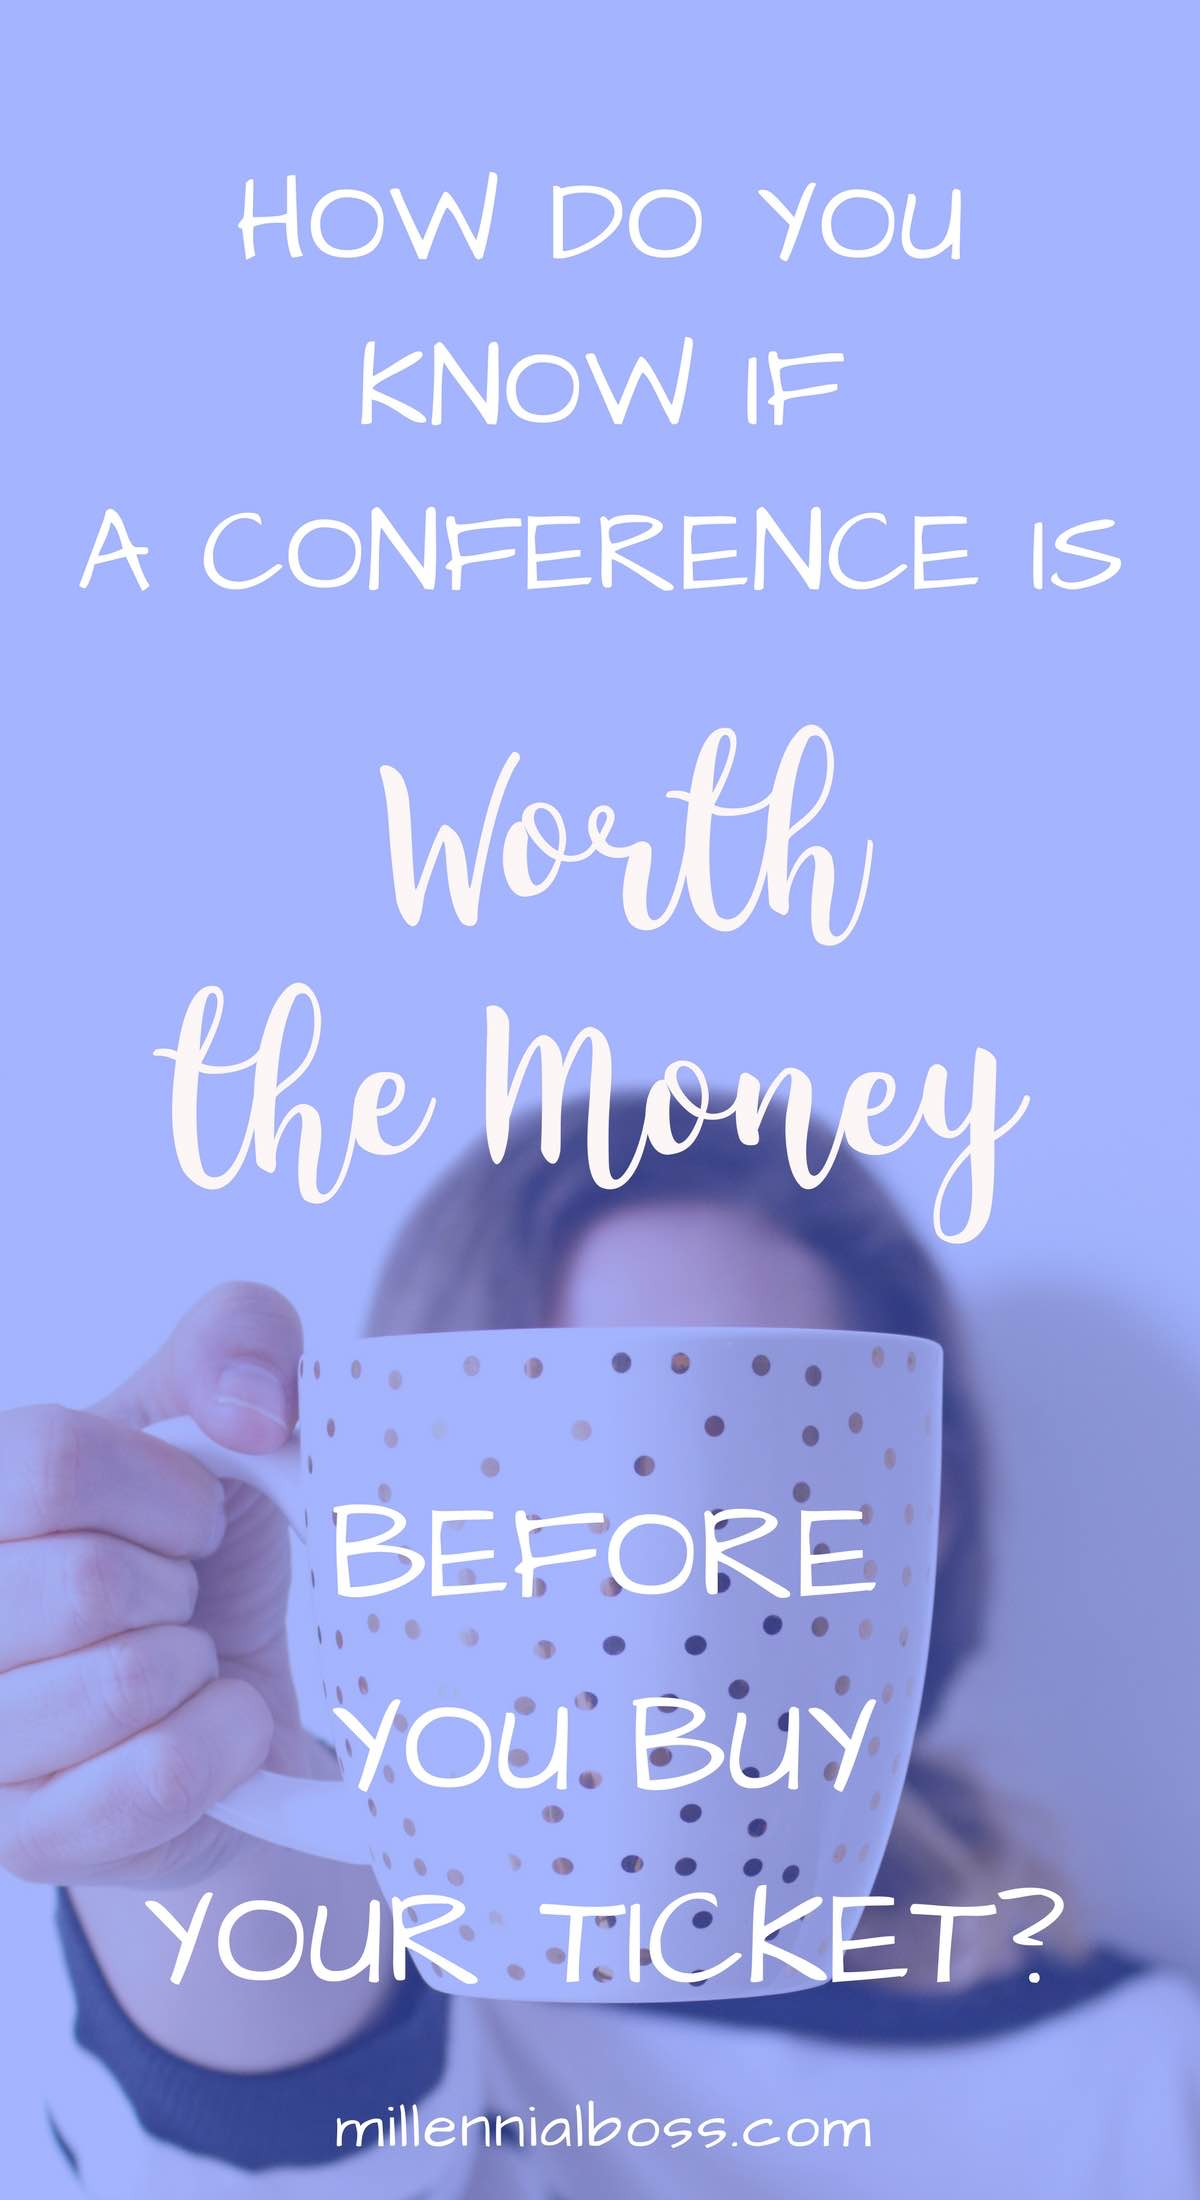 How do you know if a conference is worth it? How can you determine the value of a conference before you buy your ticket? I wonder that too.